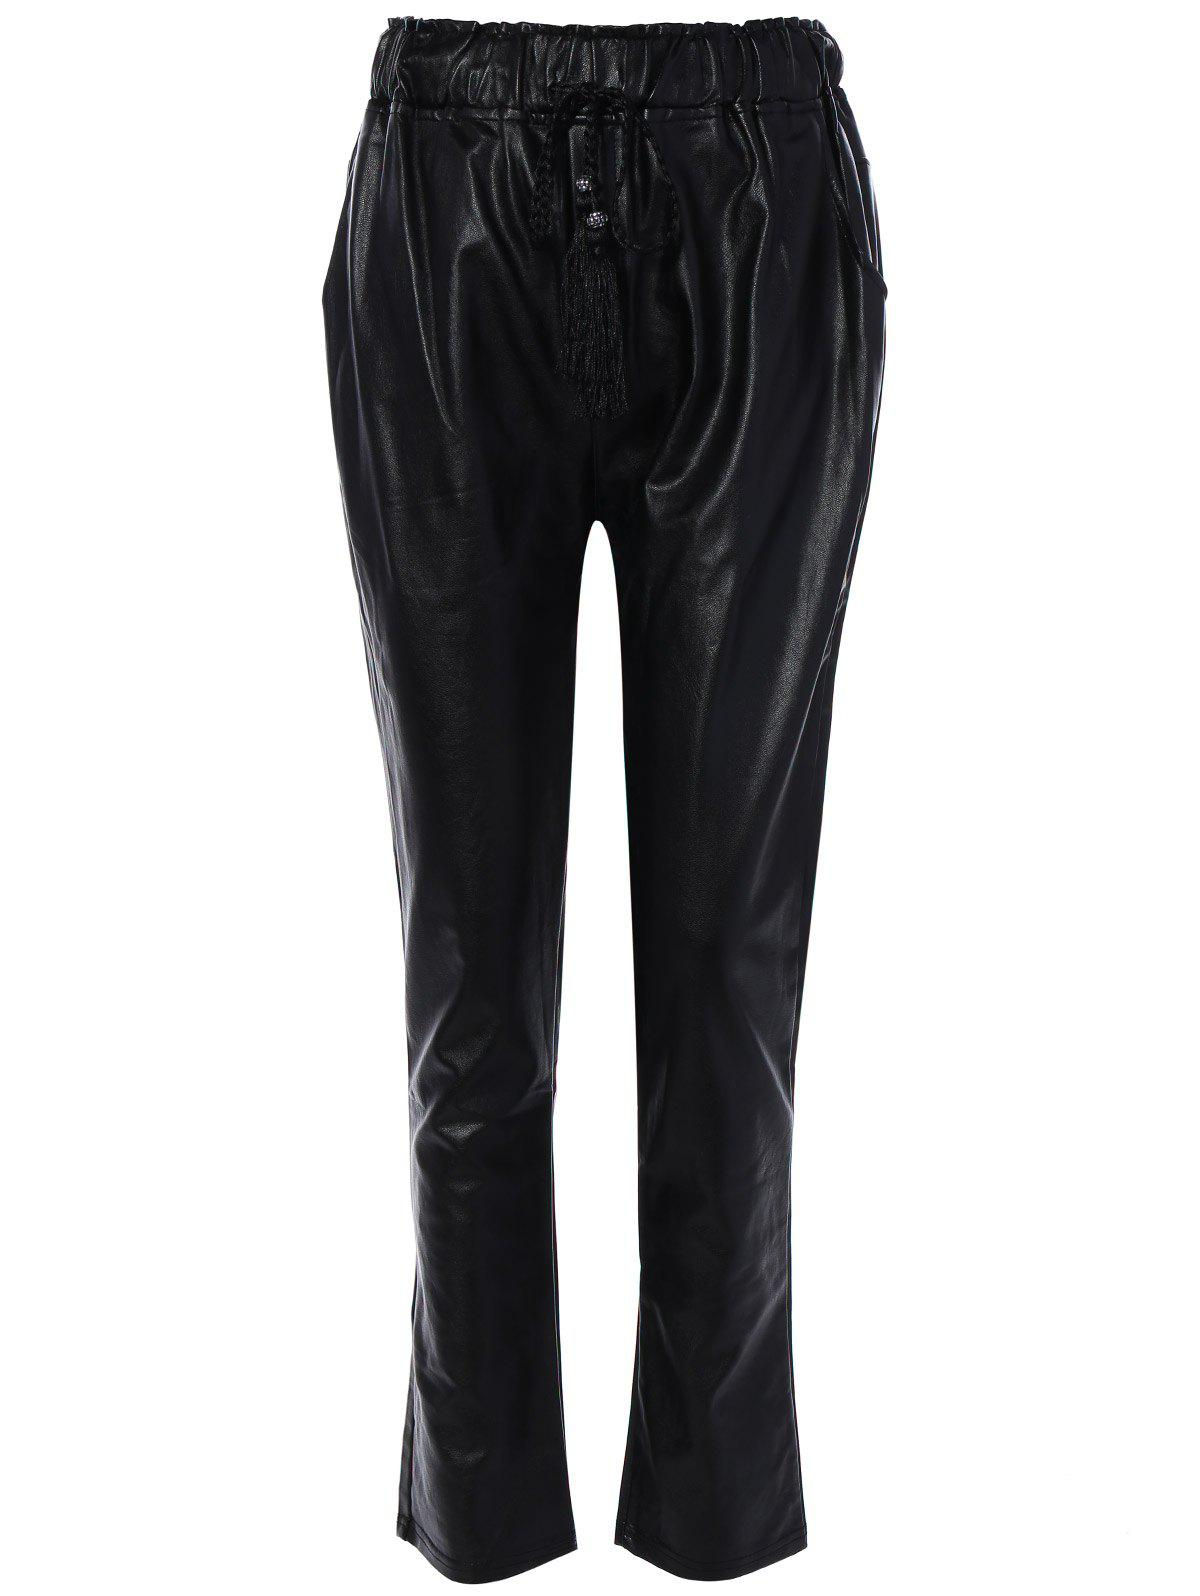 classic styles official price hot-selling genuine Leather Drawstring Bootcut Pants